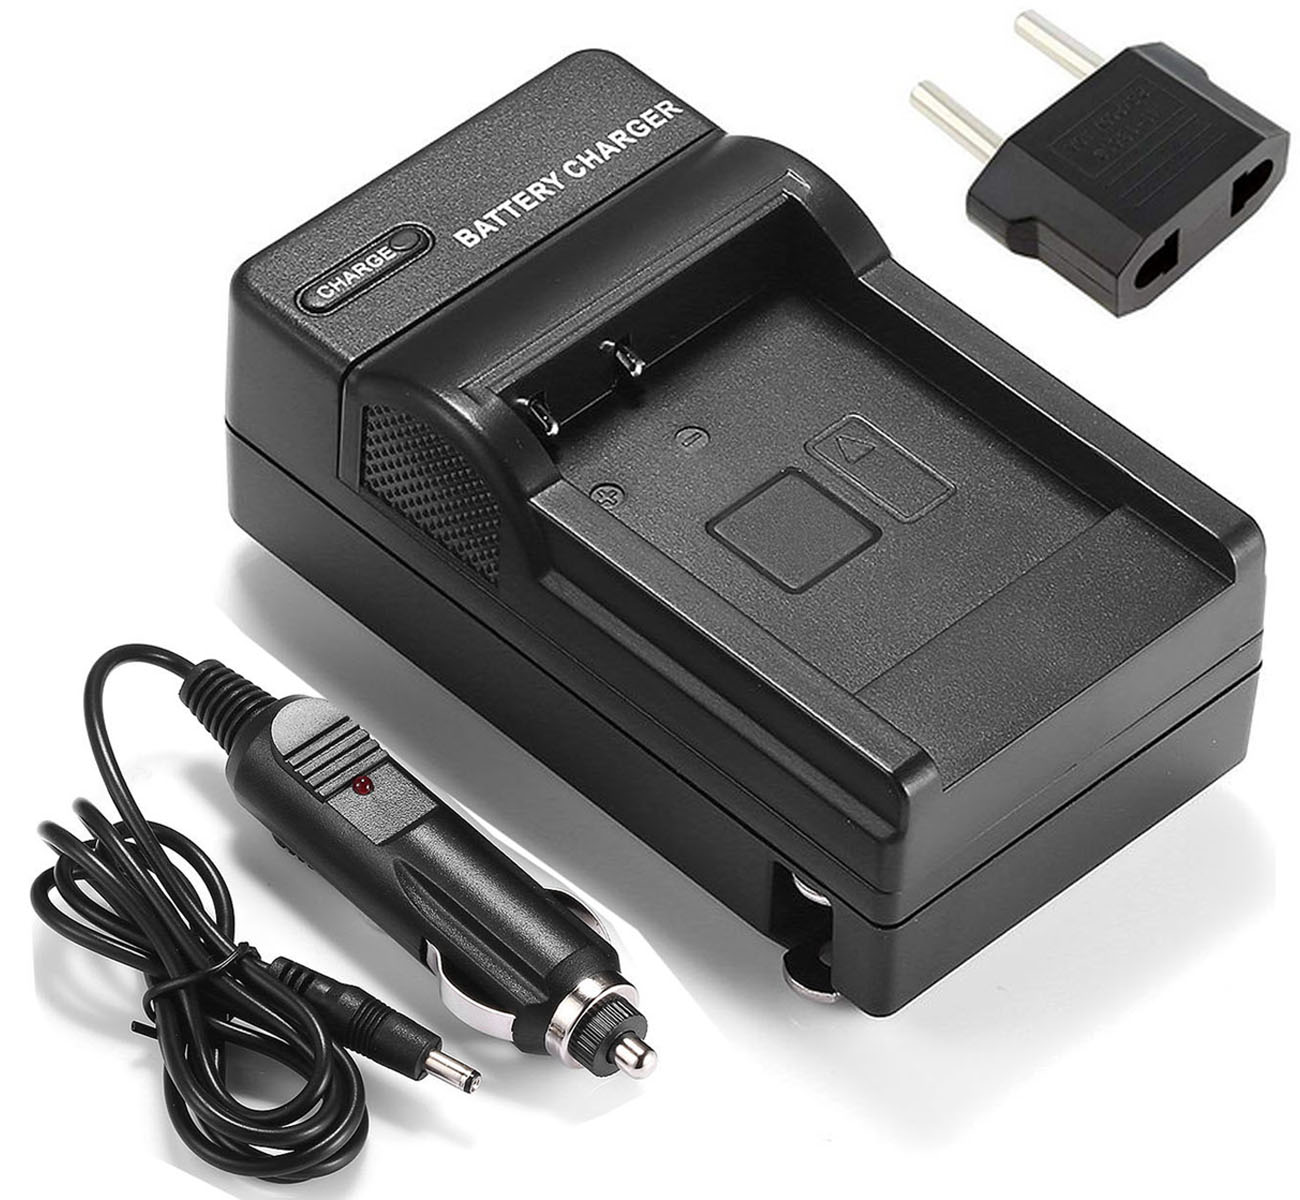 Battery Charger for Nikon Coolpix S3100, S3200, S3300, S3400, S3500, S3600, S3700, S4100, S4150,S4200,S4300,S4400 Digital Camera image